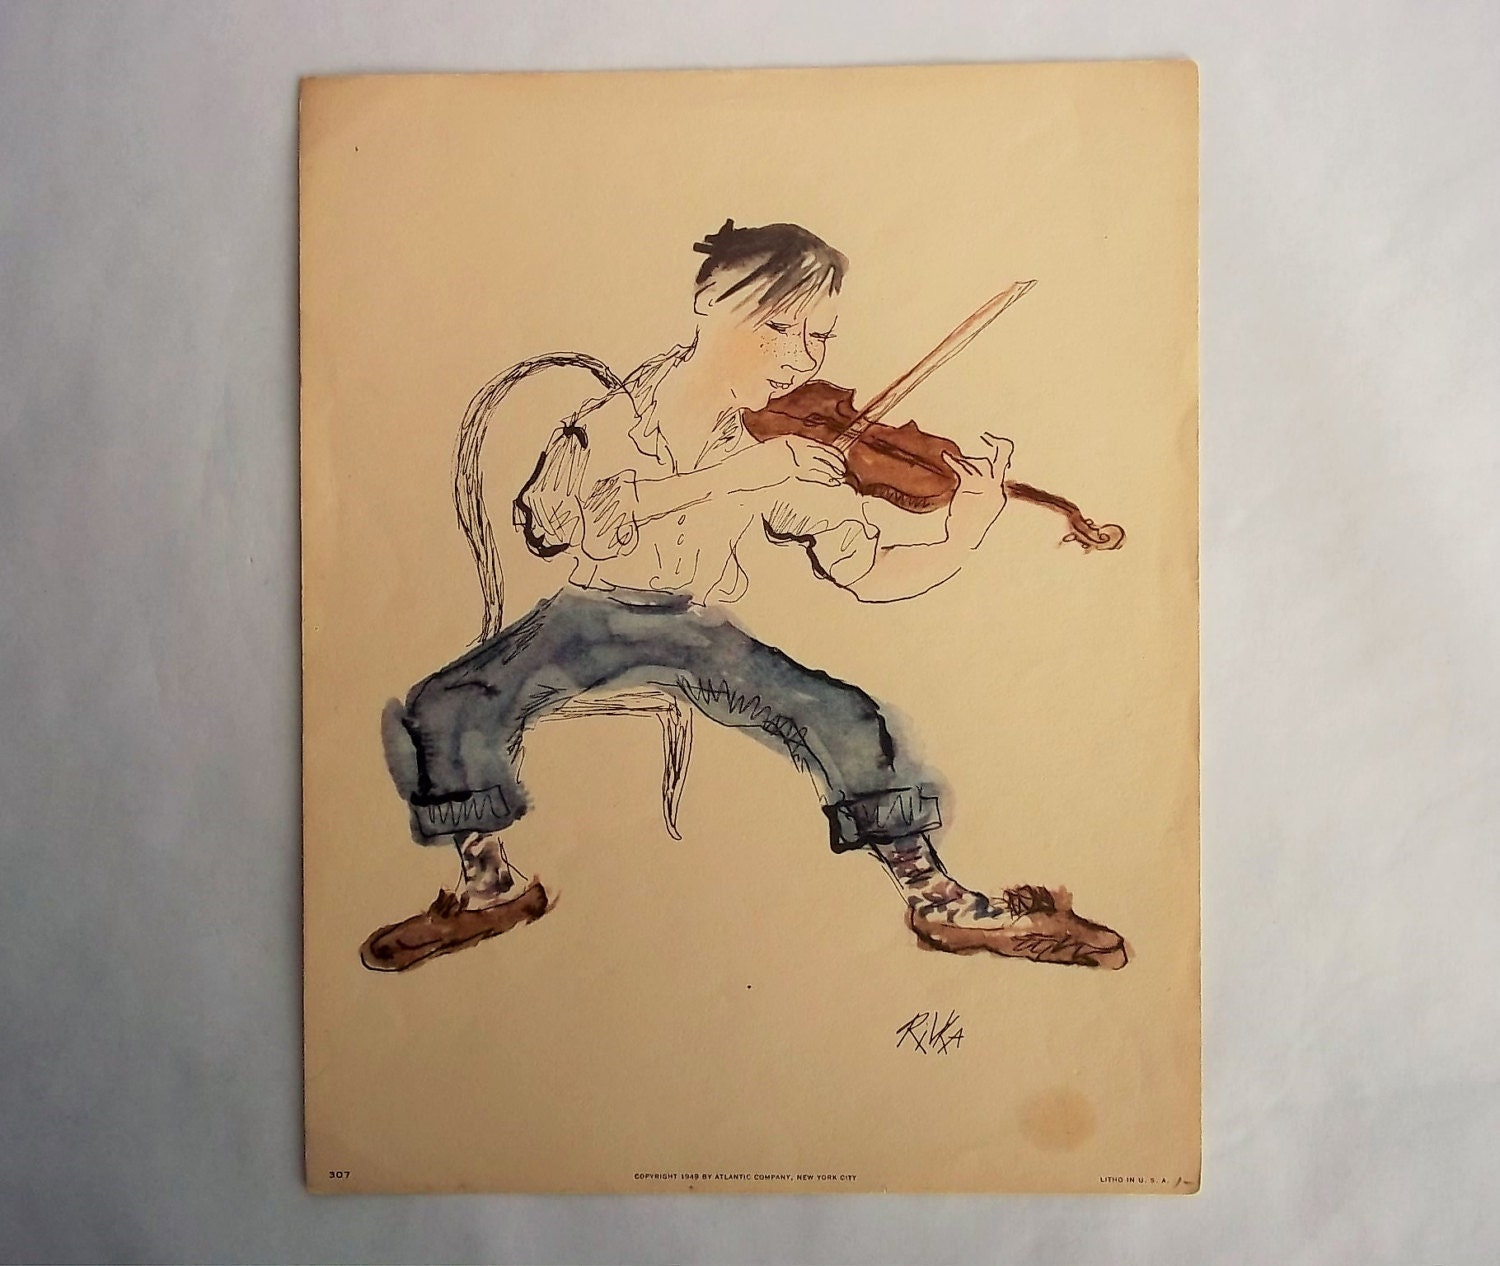 Wall Art Boy Playing Violin Vintage Litho Print USA by Rivka